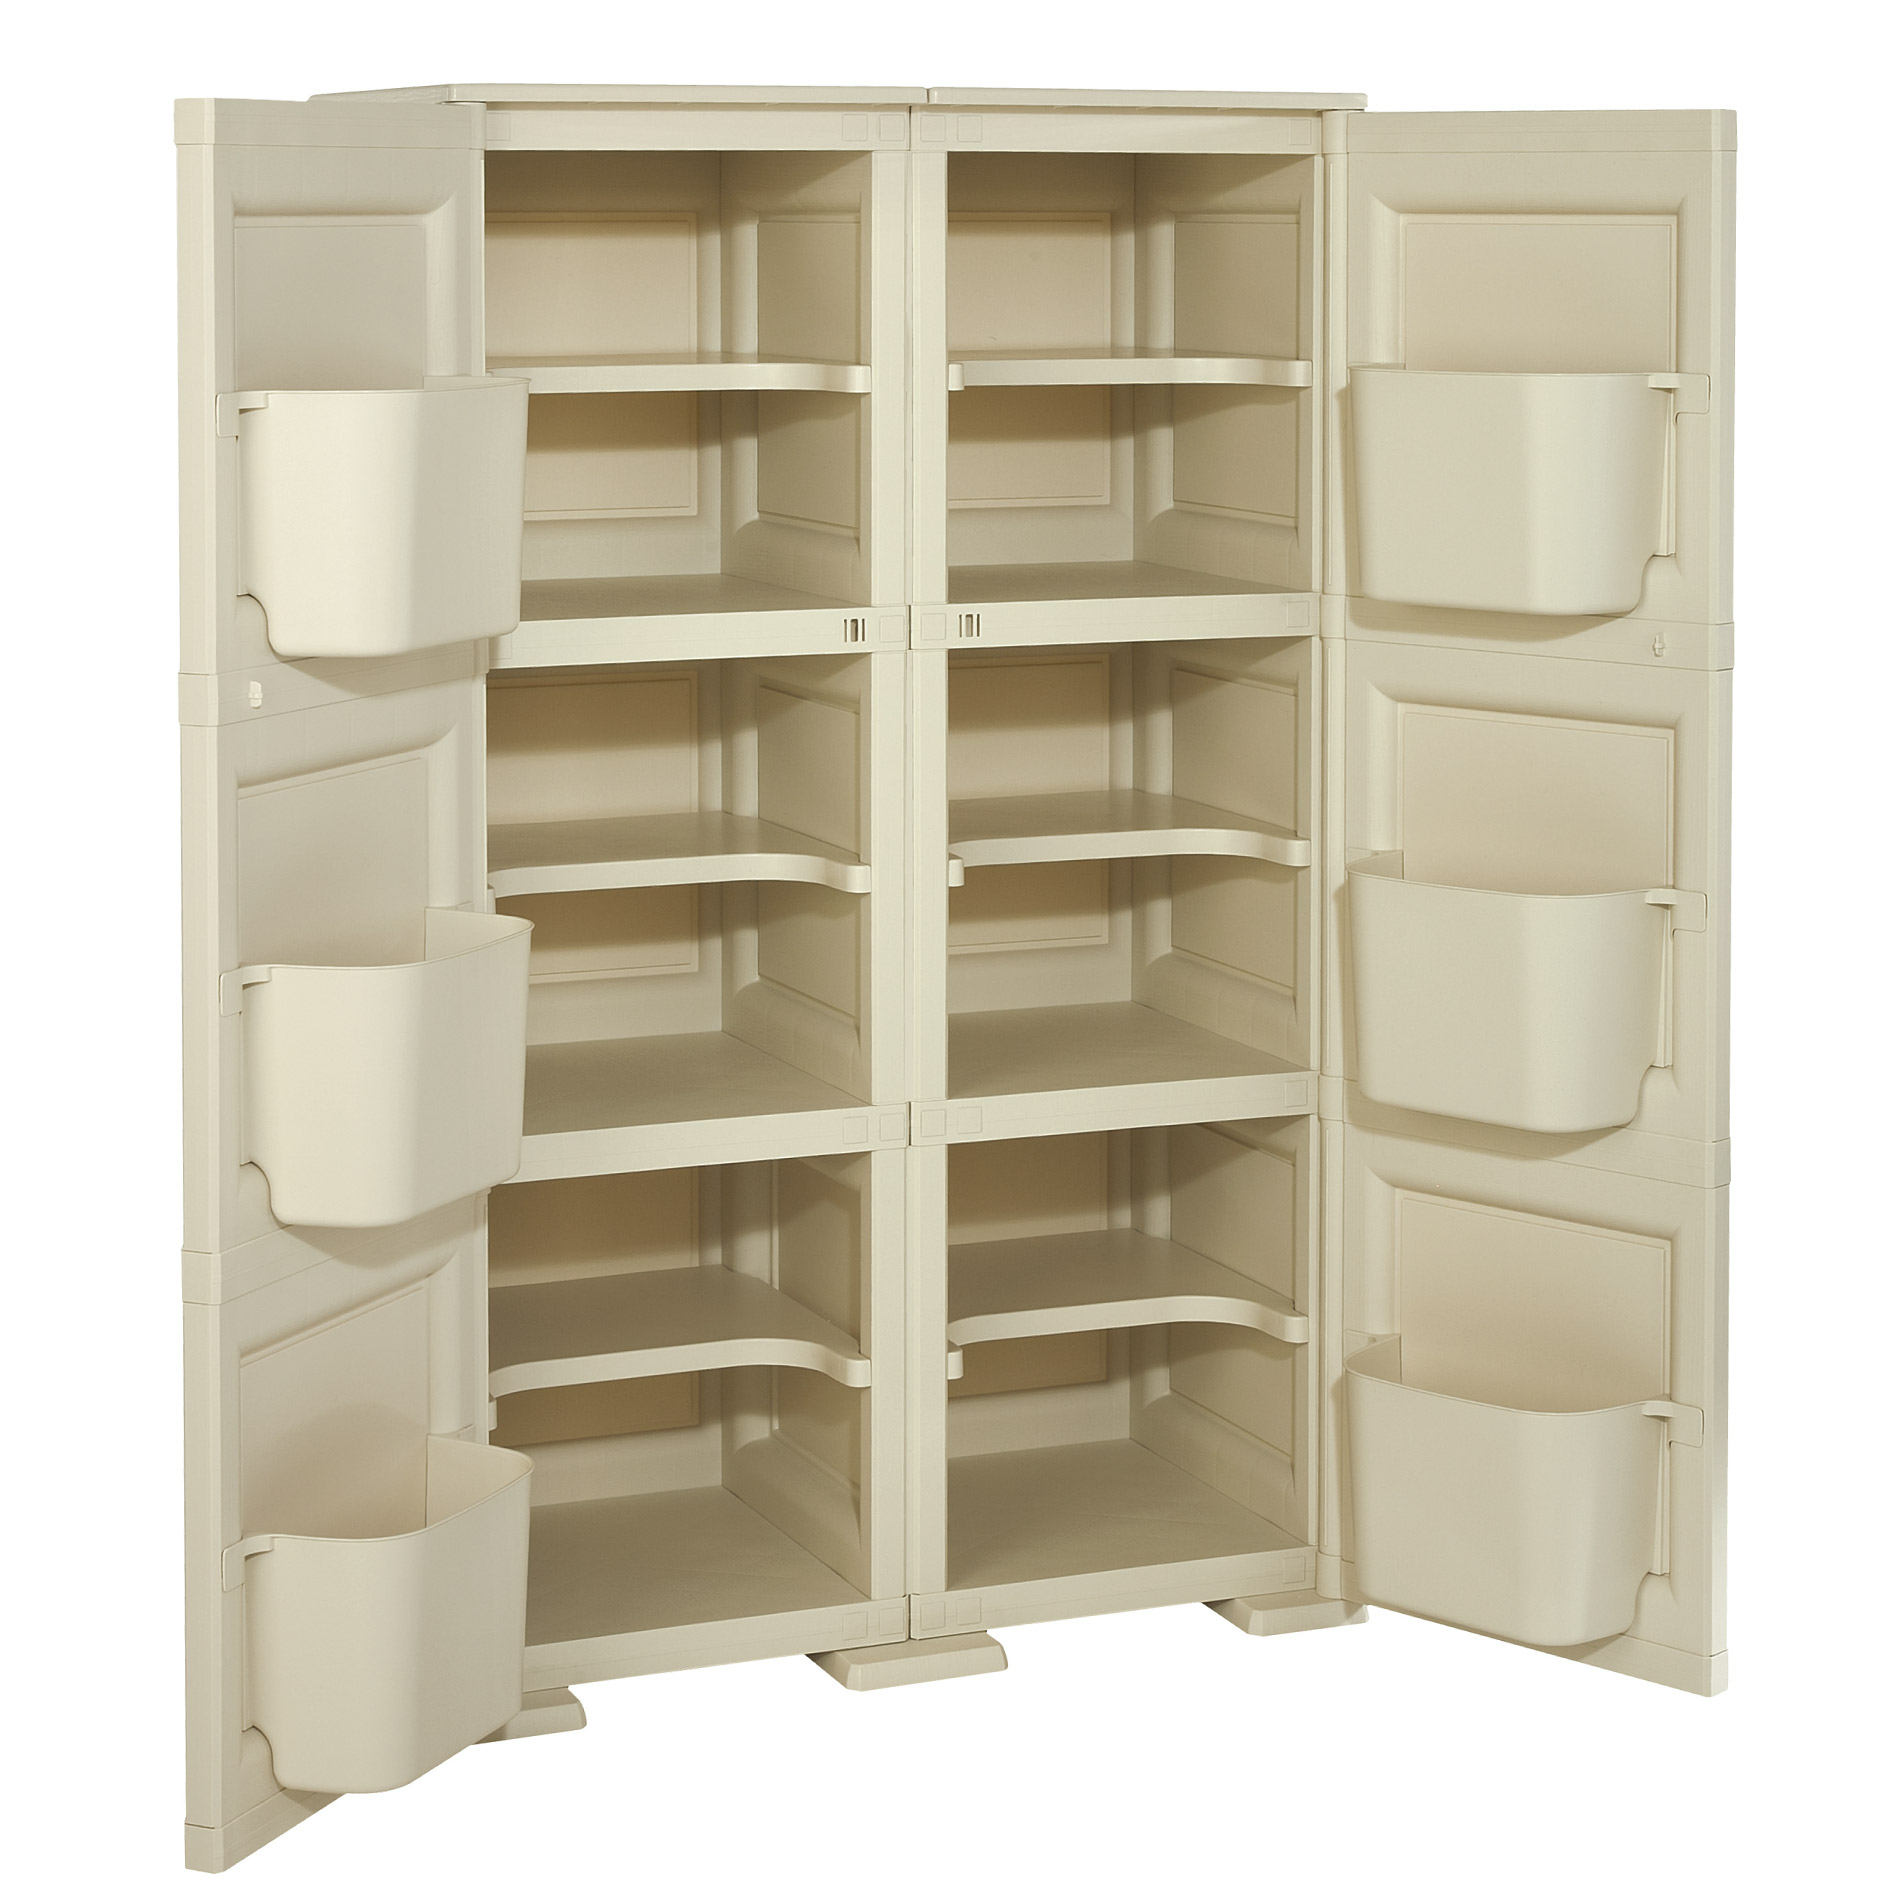 storage organising floor cabinet uneven an cupboards in furniture the hind also outdoor en gb stands ikea feet on steady cupboard plastic grey products since garden